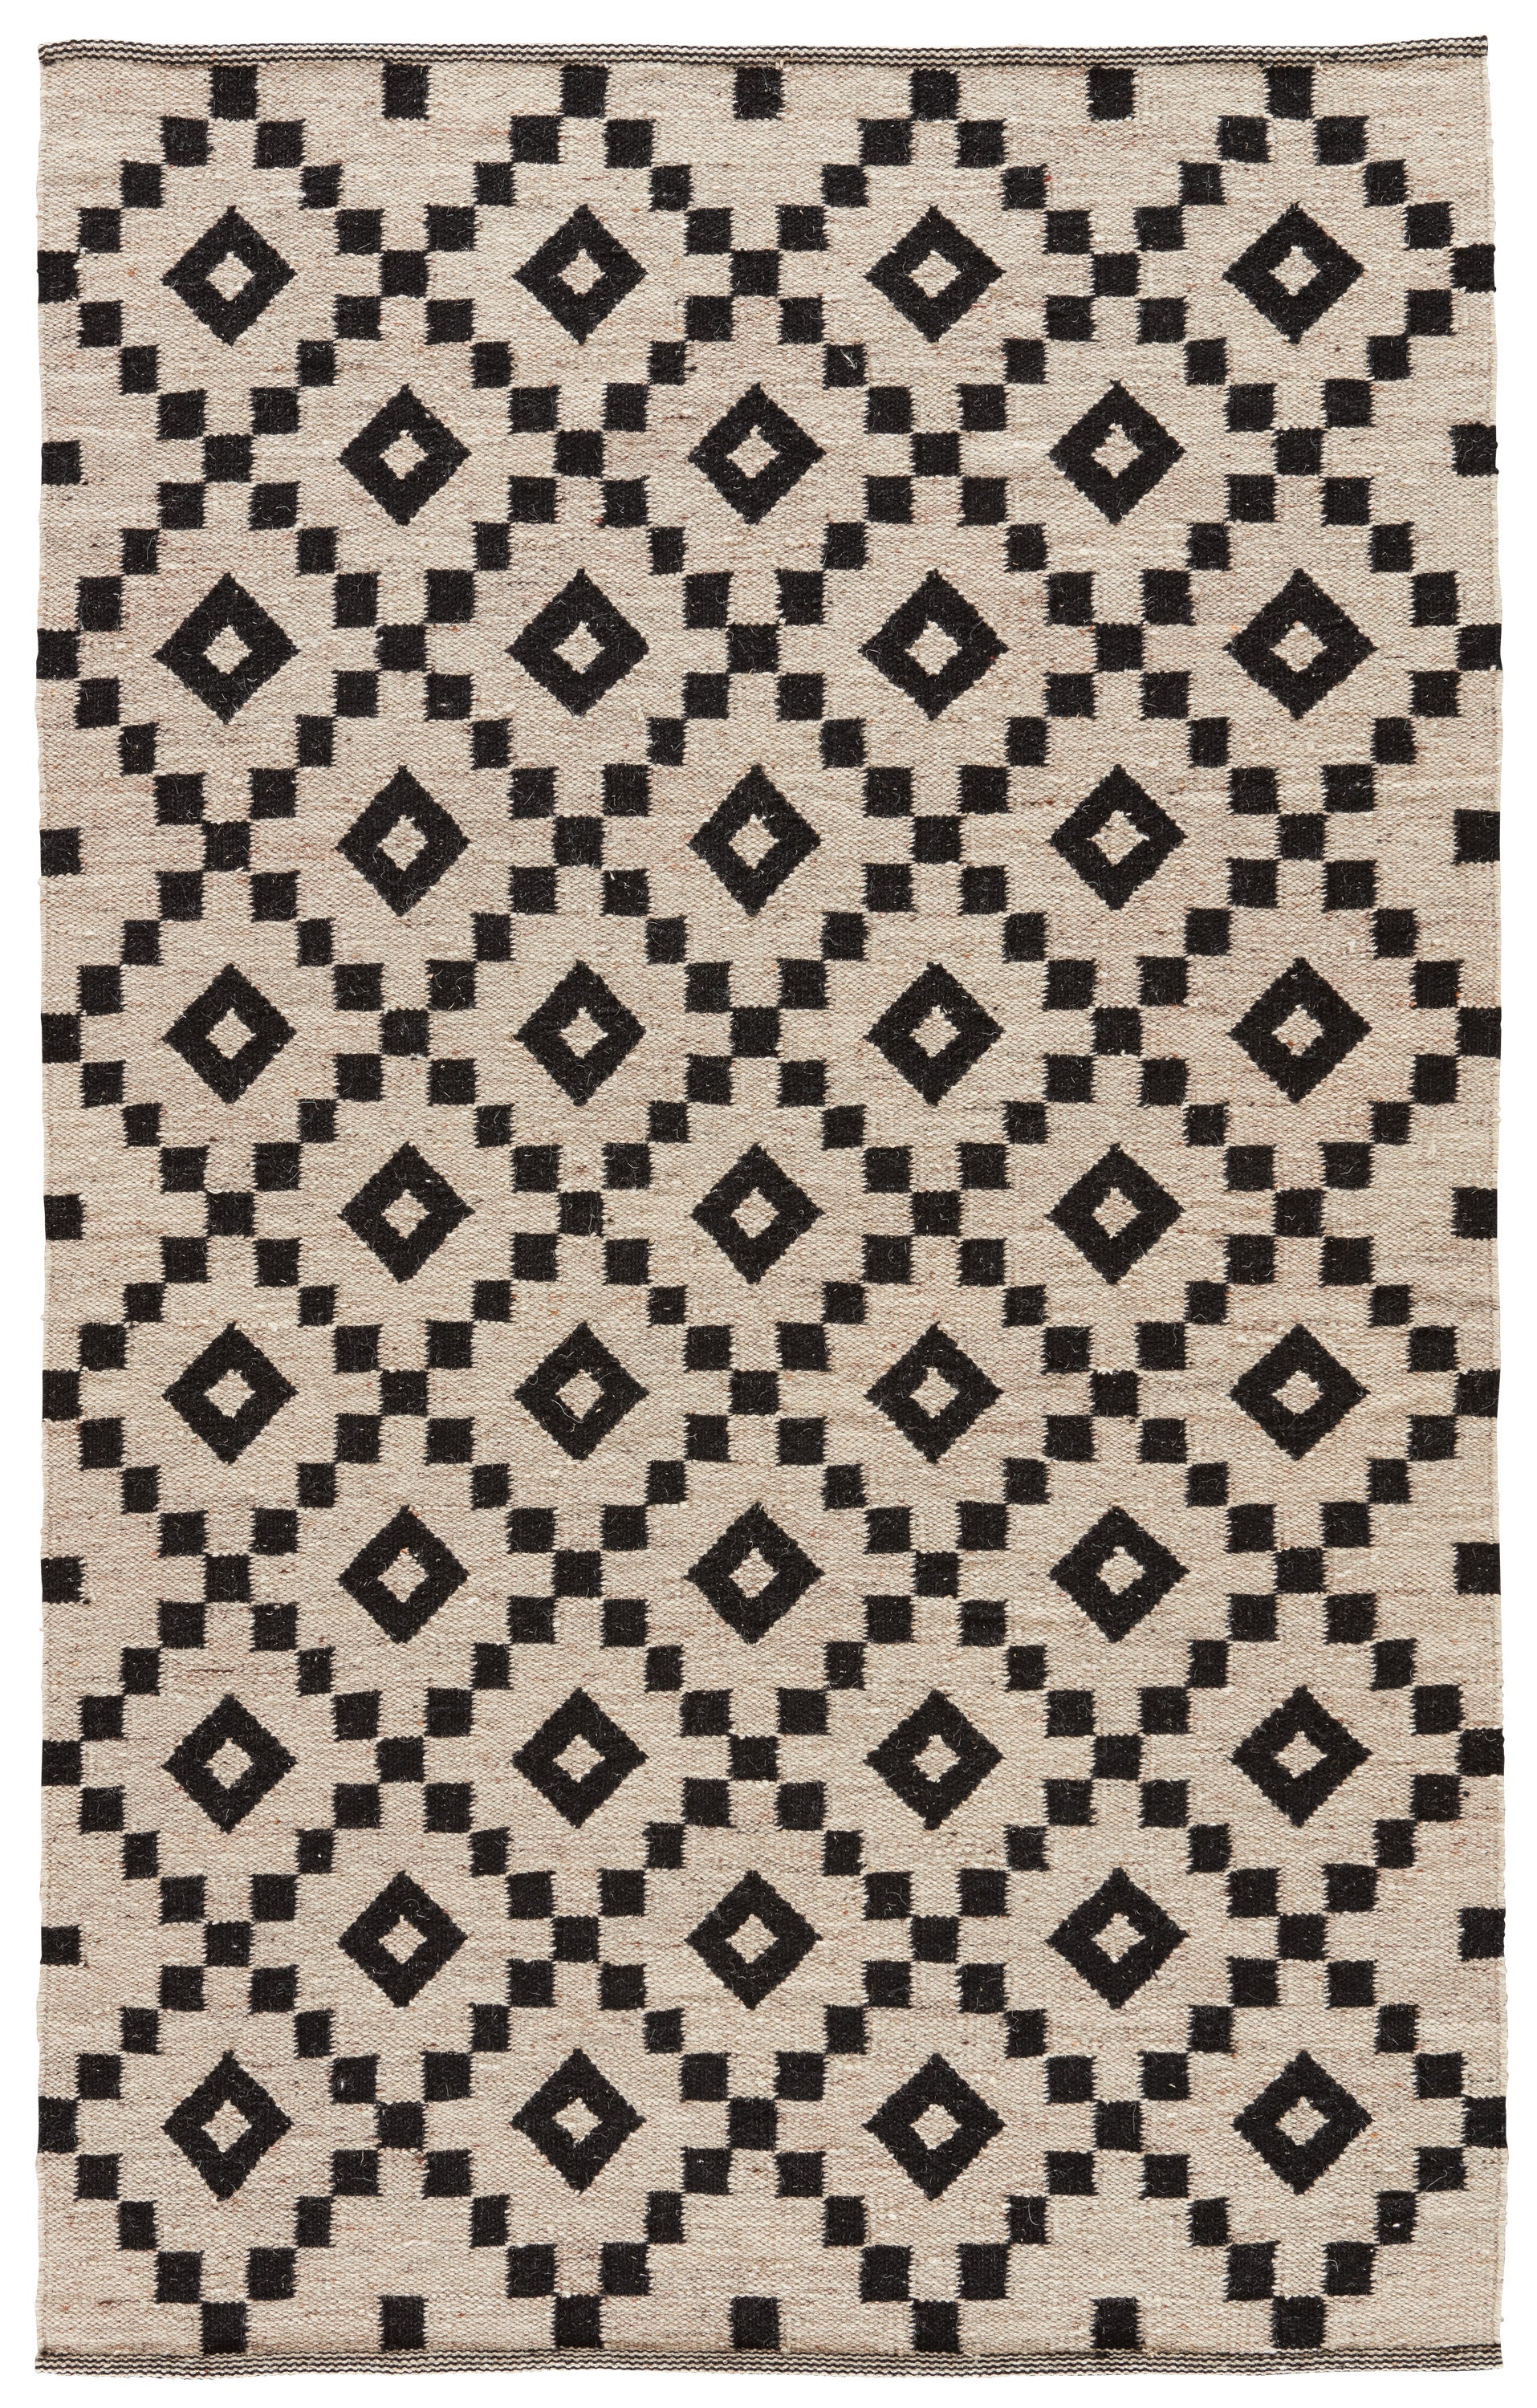 Rectangle Black Geometric Dhurrie Wool Modern recommended for Kitchen, Bedroom, Bathroom, Dining Room, Office, Hallway, Living Room